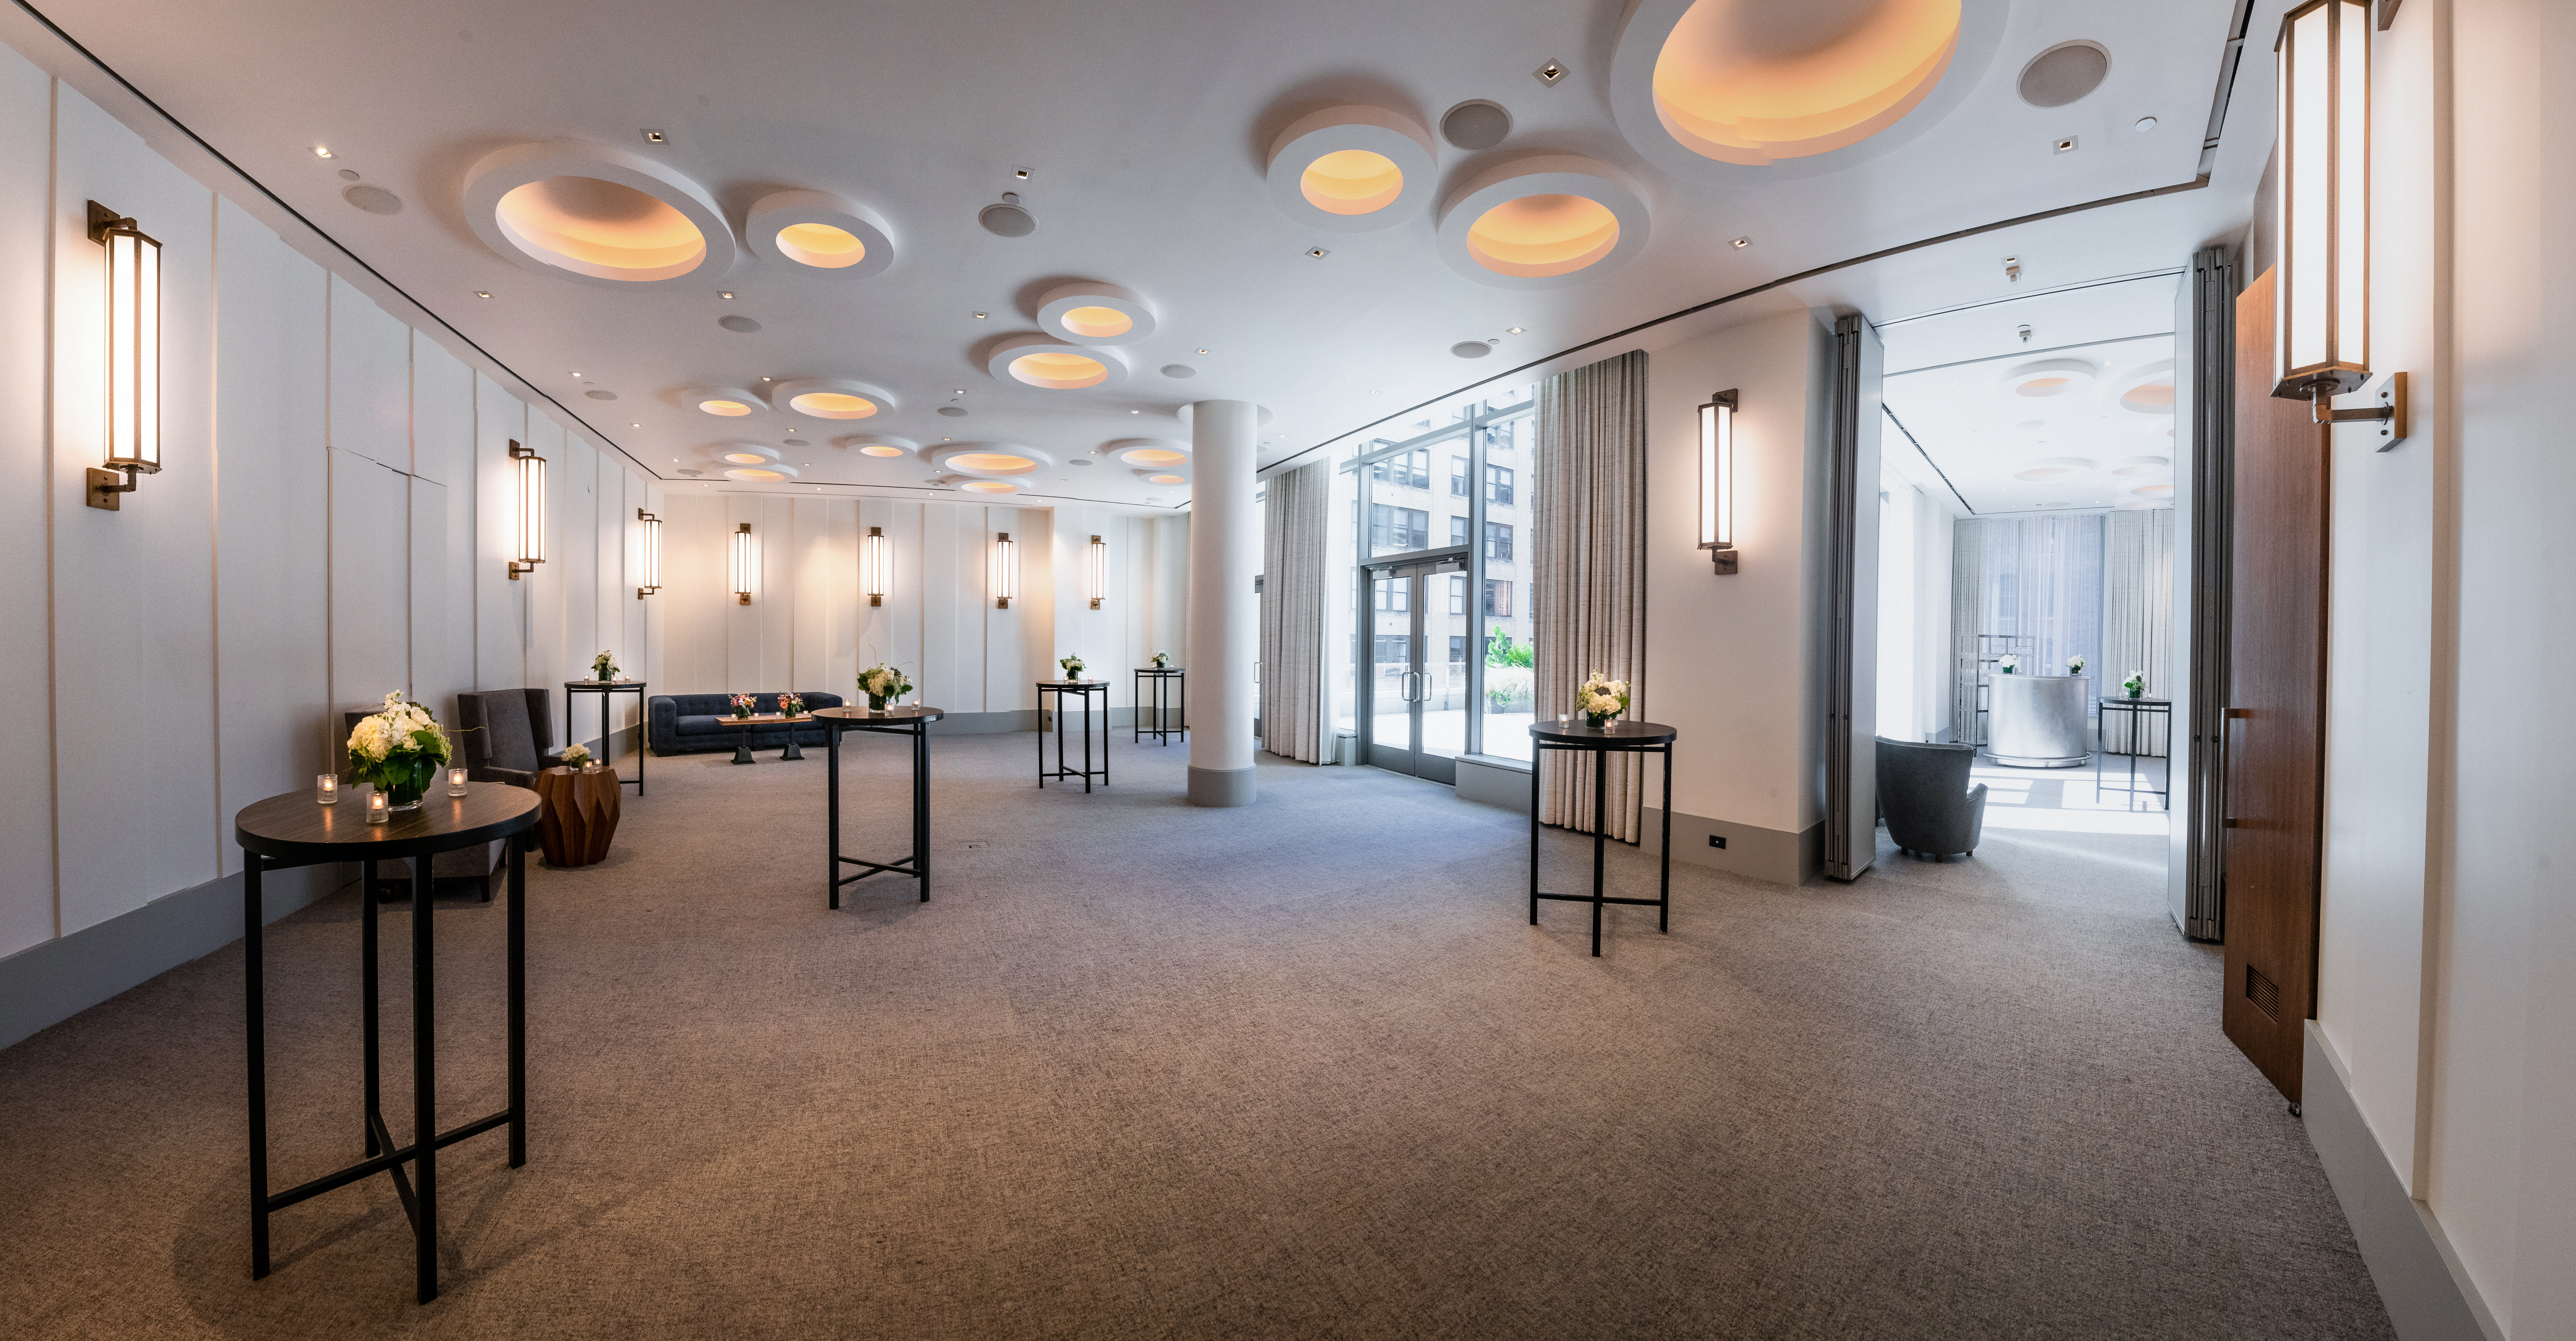 The event spaces use bright colors, custom dyes, new light fixtures, contemporary drapes, reupholstered furniture and hand-dyed carpets.